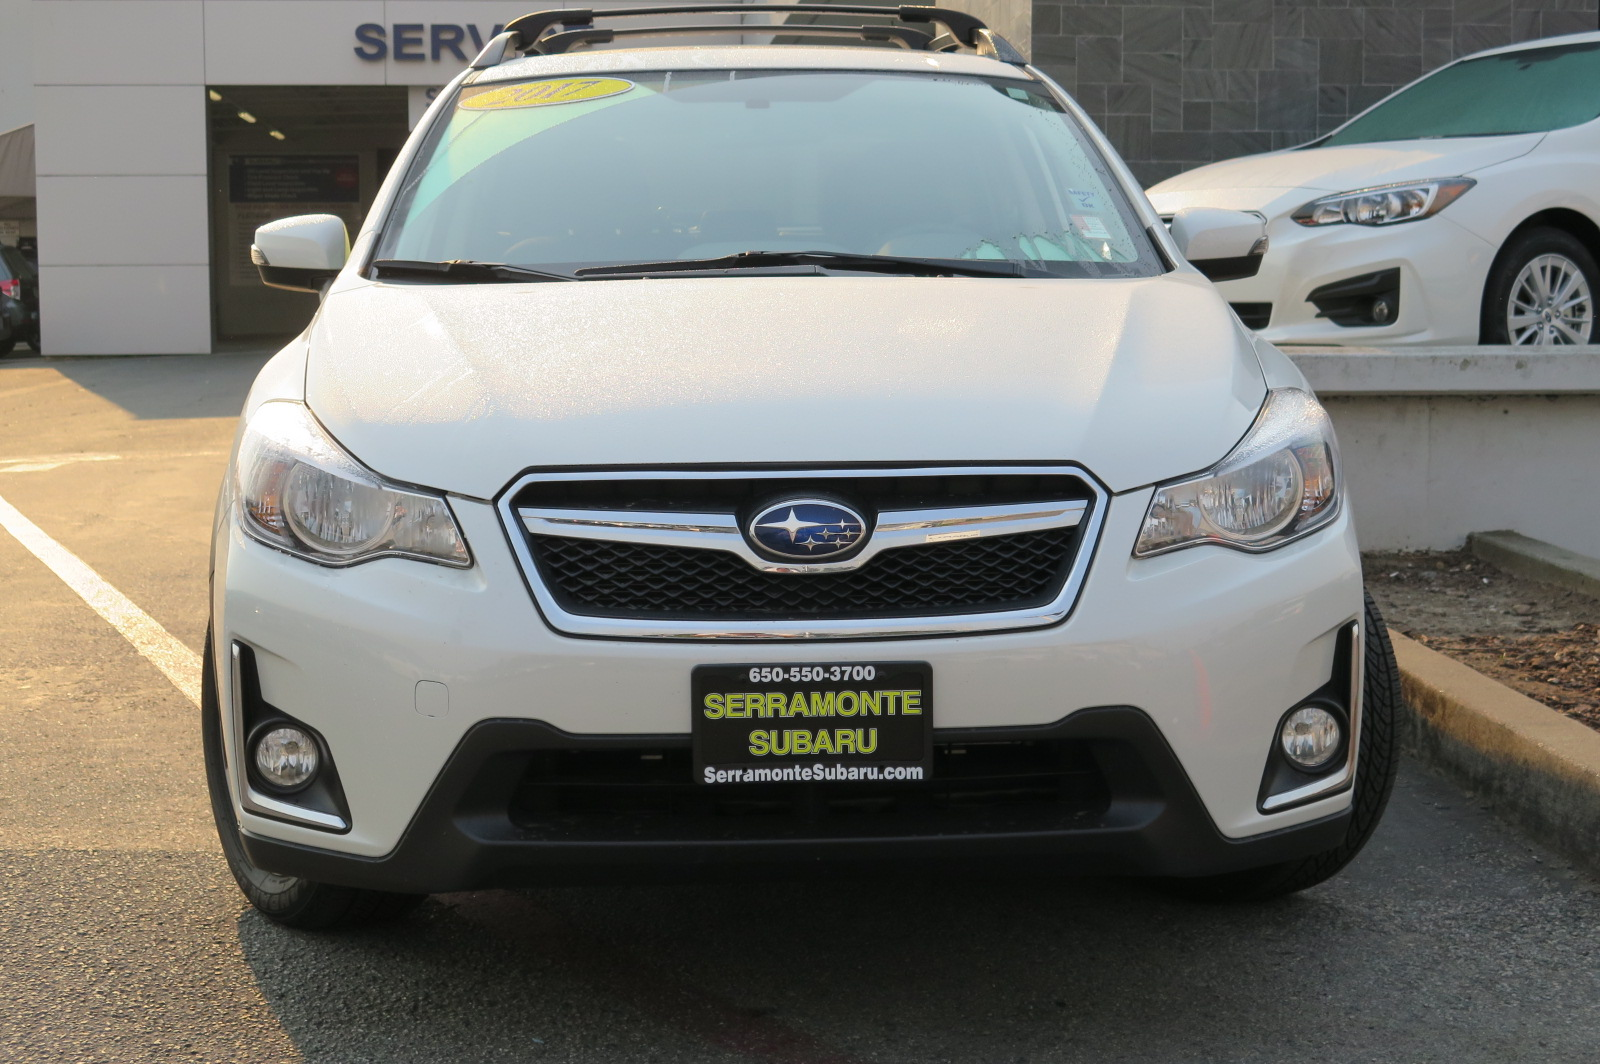 2017 SUBARU CROSSTREK 20I LIMITED SPORT UTILITY white 4-cyl pzev 20 liter automatic check out